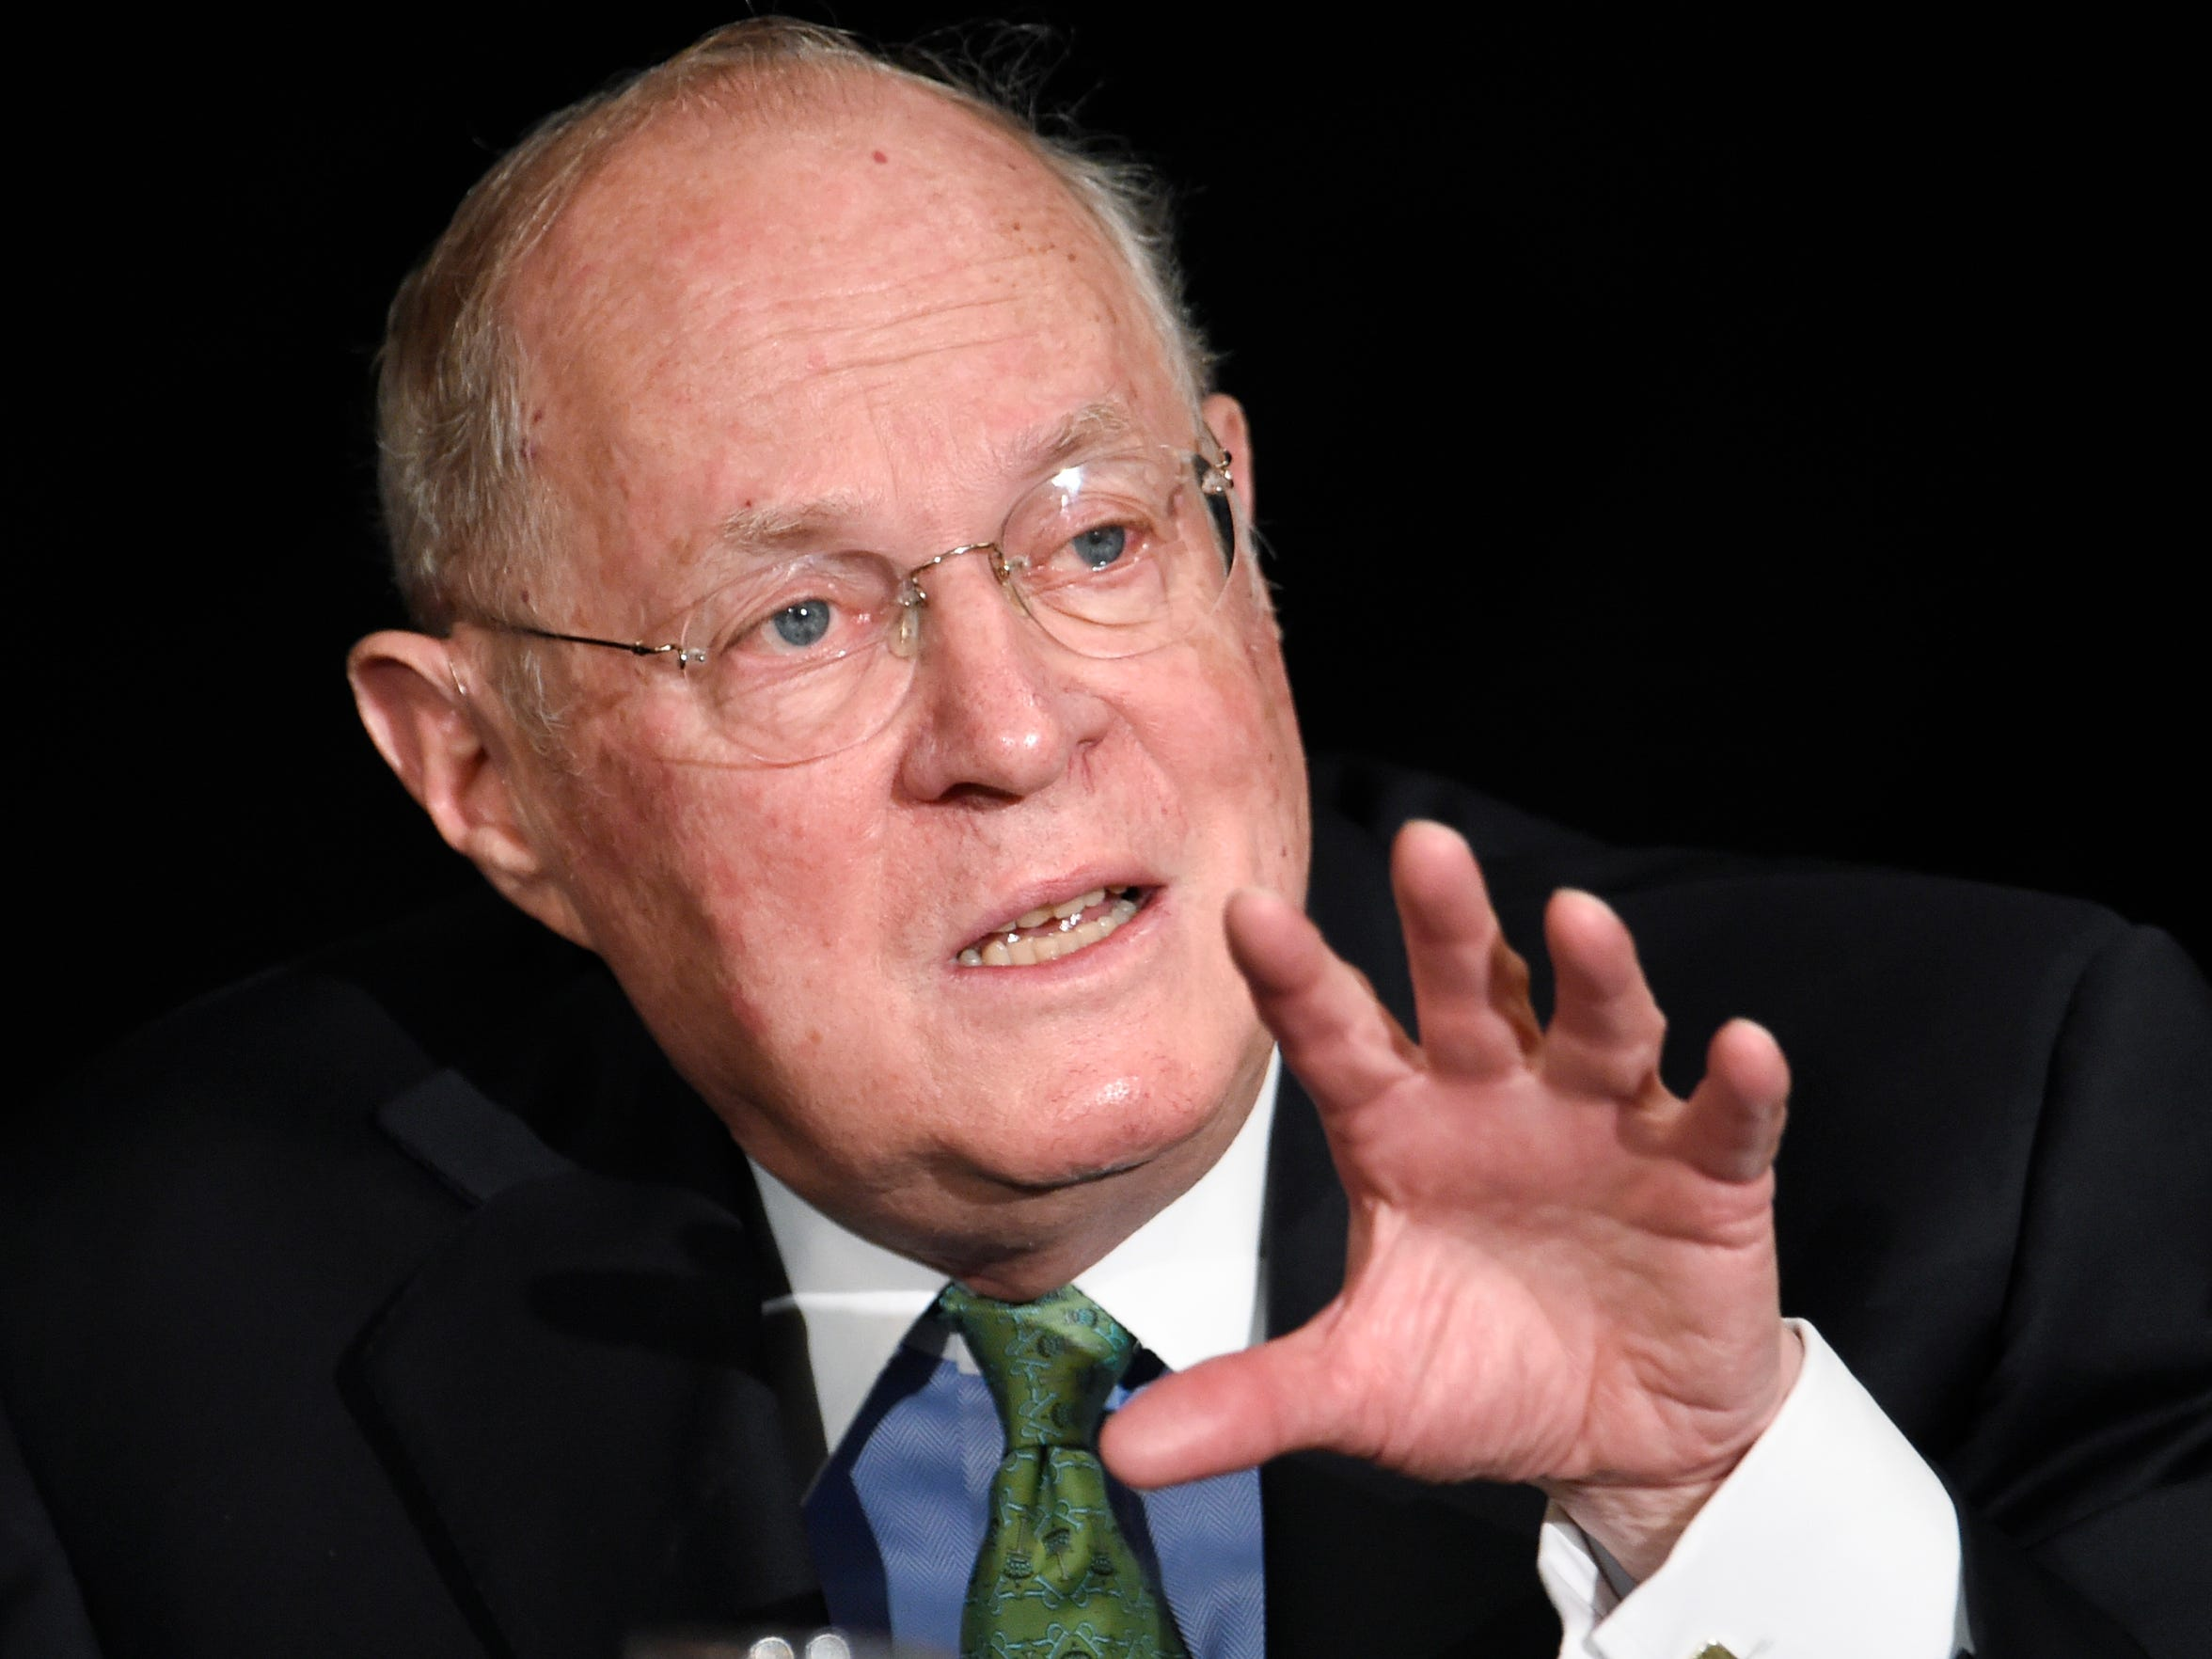 Supreme Court Justice Anthony Kennedy has cautioned against the risks of solitary confinement.